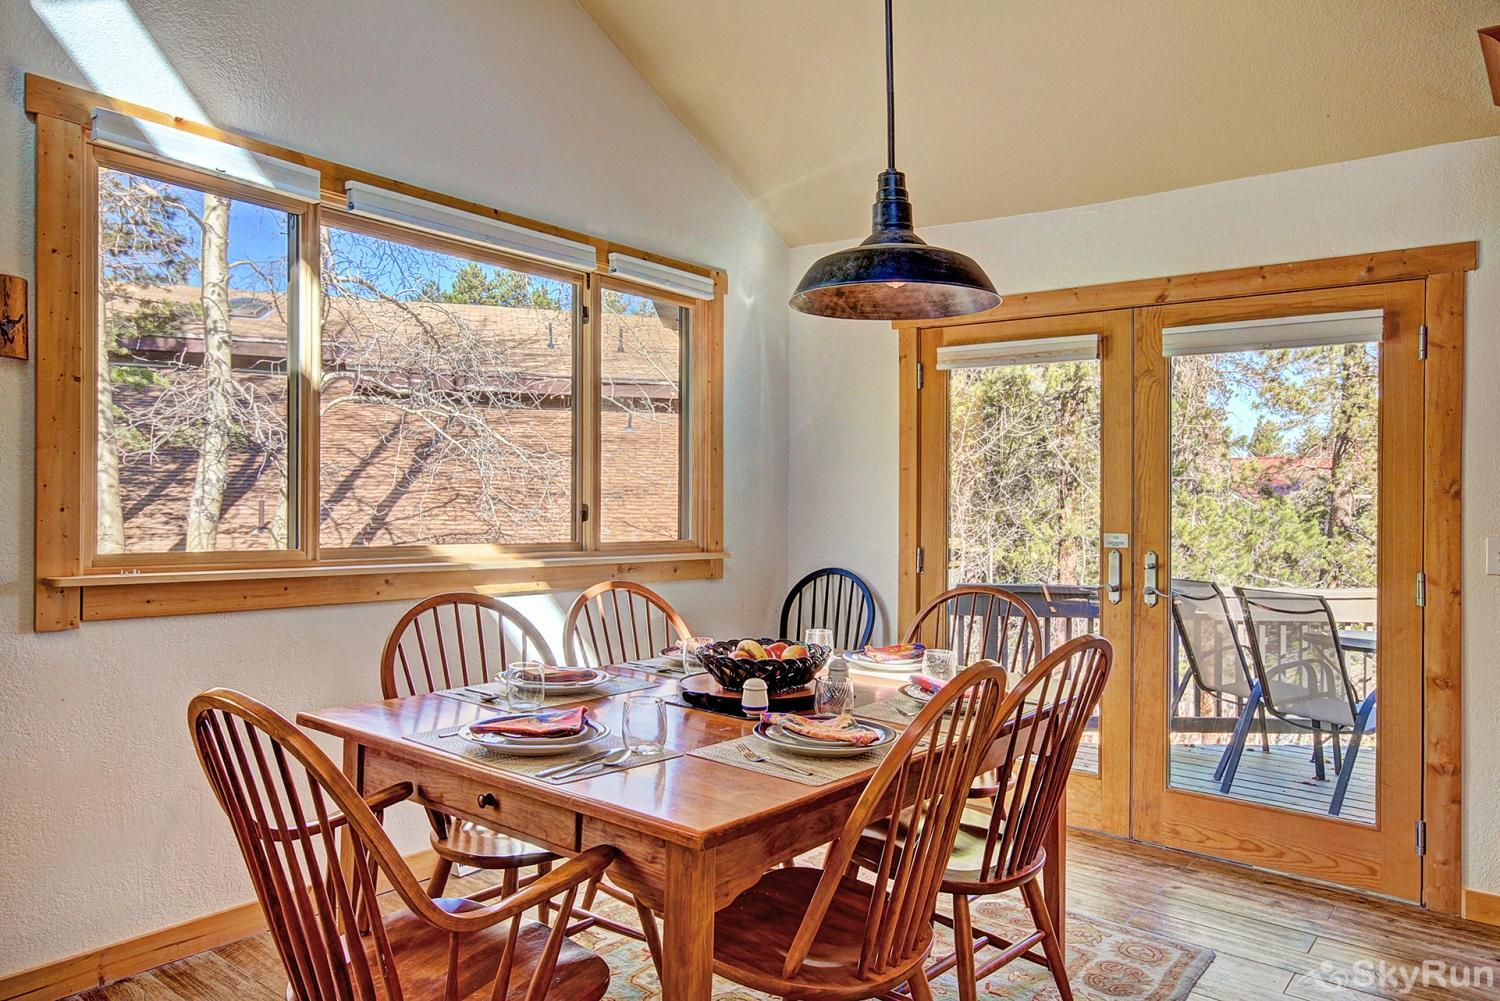 Broken Lance Lodge Dining area with access to deck and great views